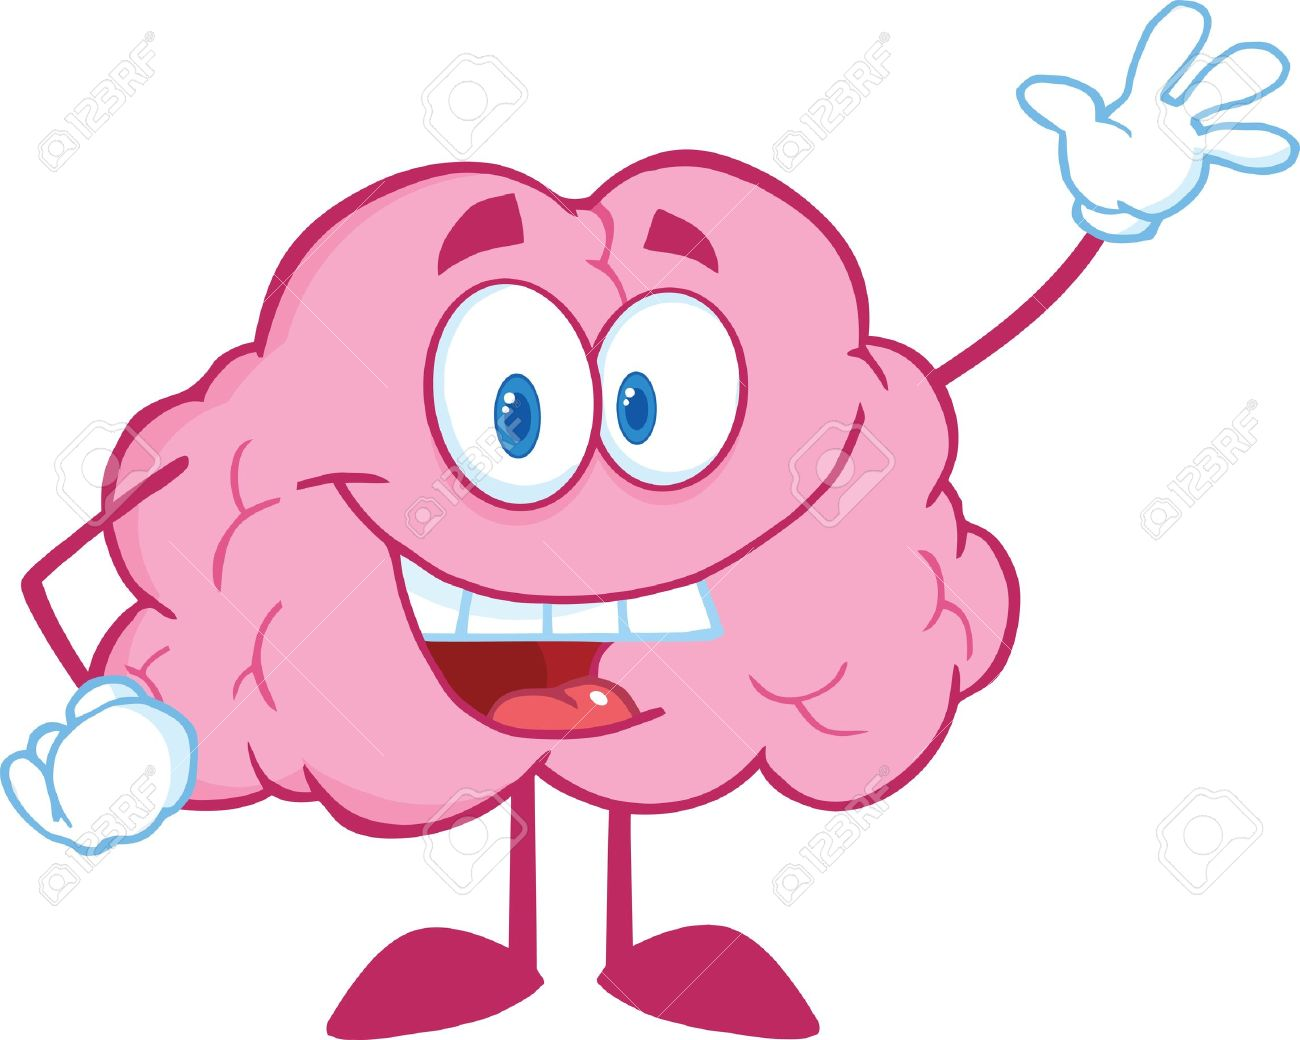 Happy Brain Cartoon Character Waving For Greeting.